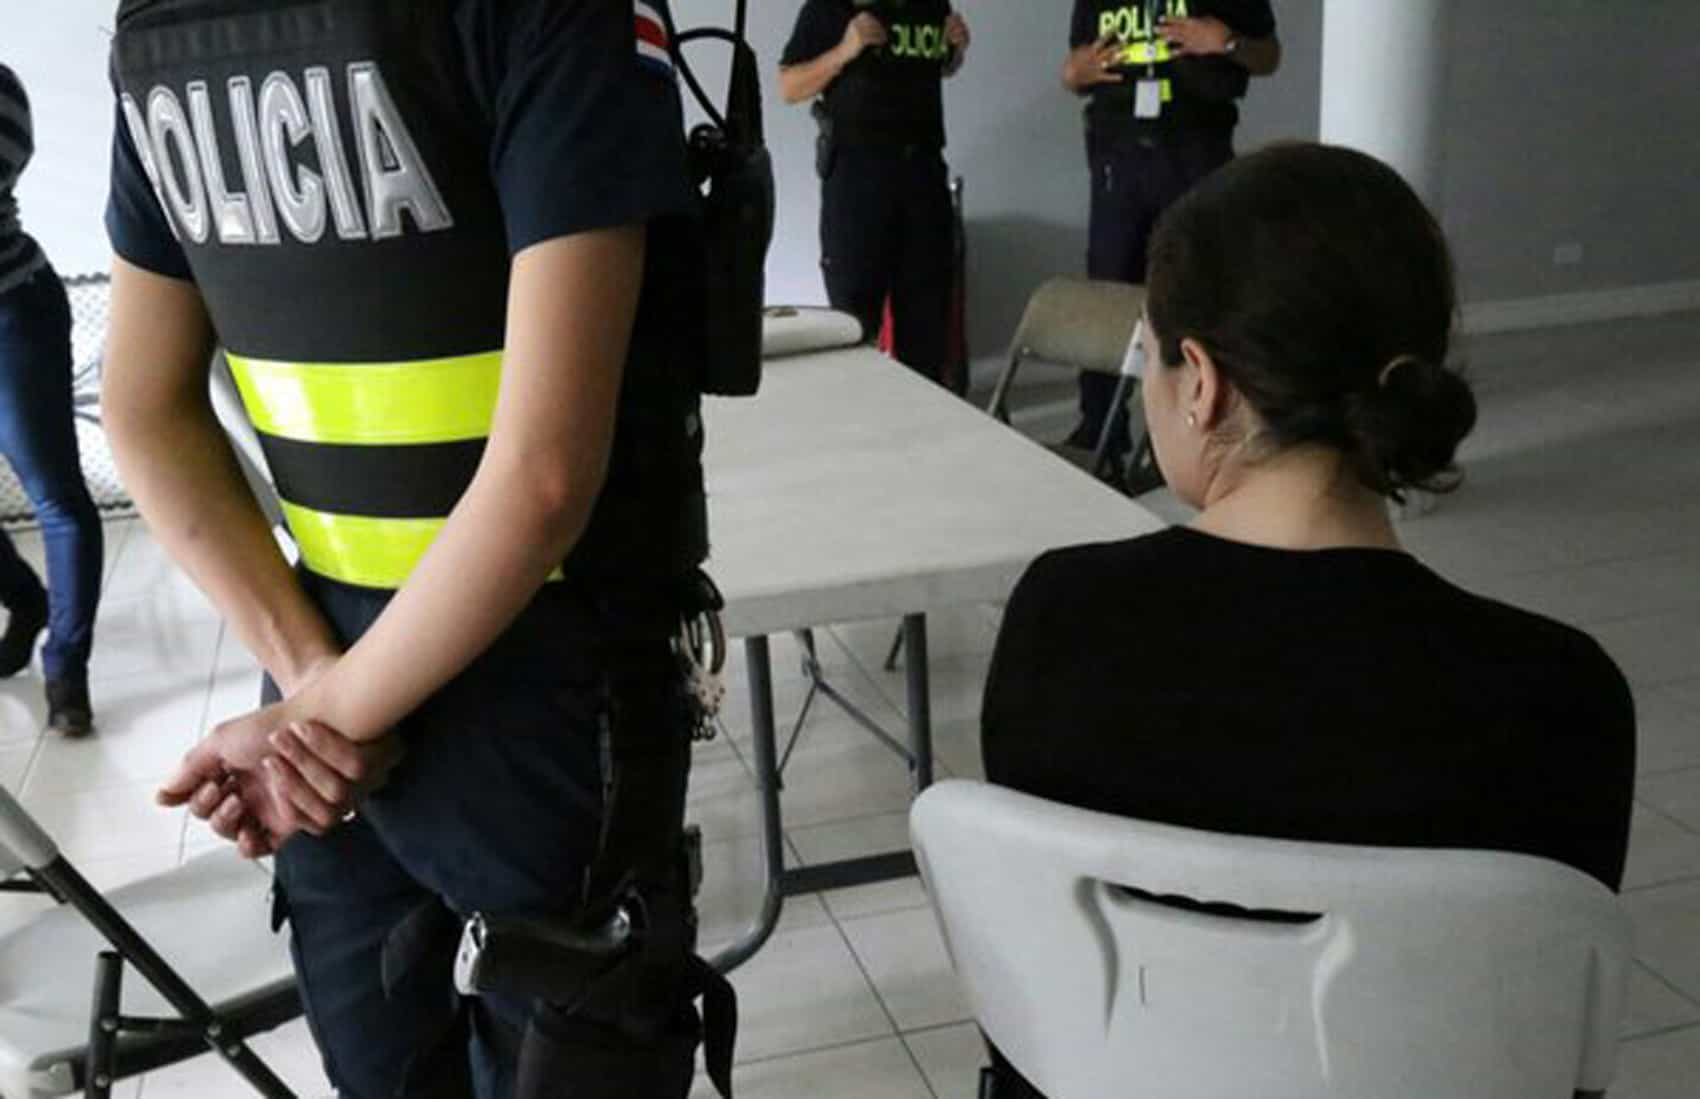 A 30-year-old Syrian woman and mother of two detained in San José, Costa Rica